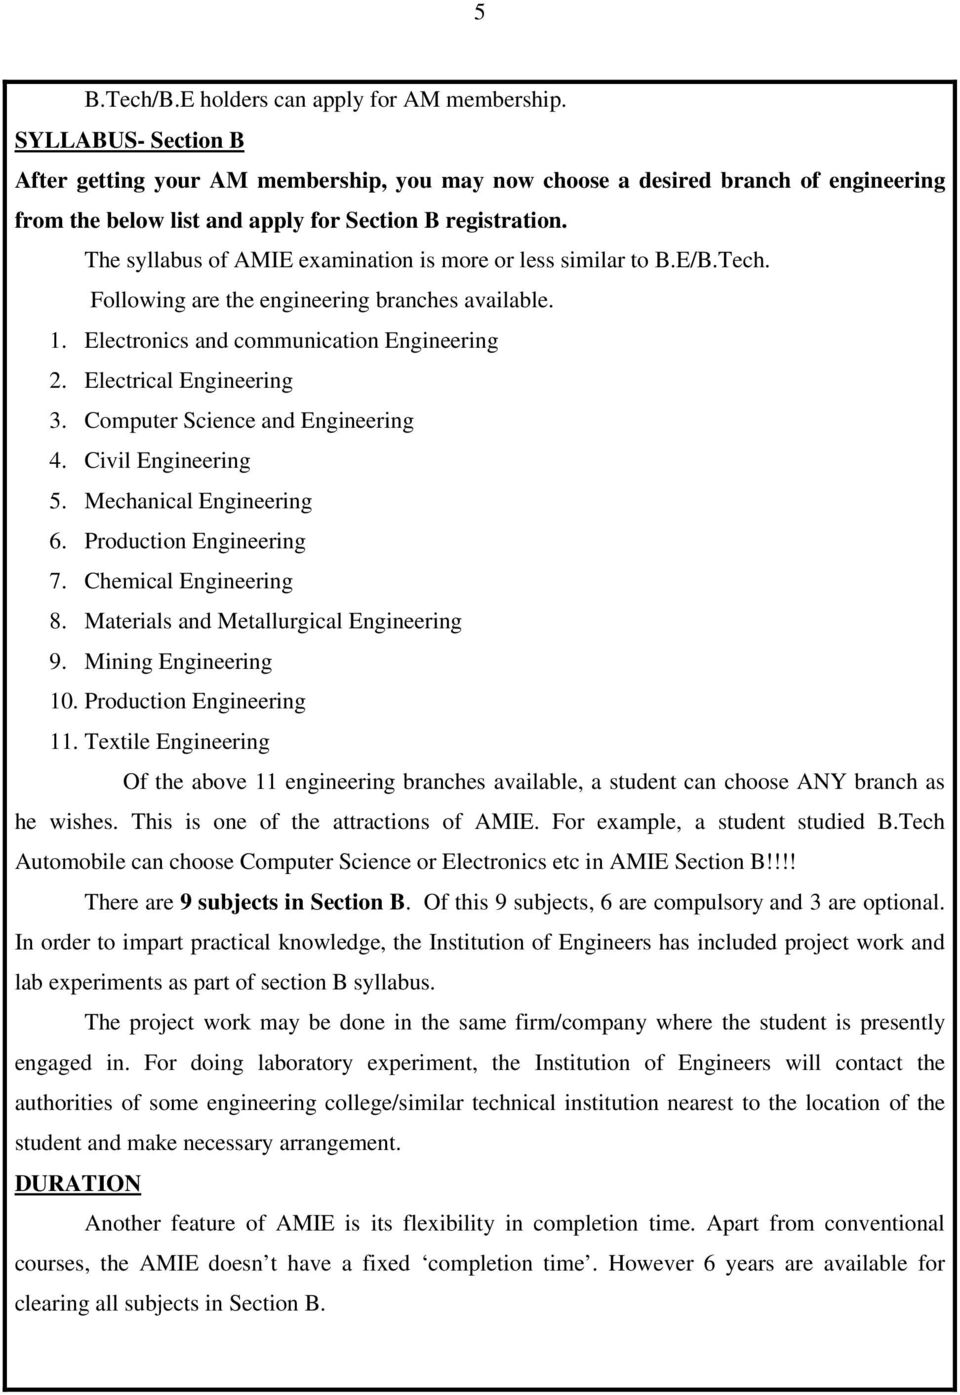 The syllabus of AMIE examination is more or less similar to B.E/B.Tech. Following are the engineering branches available. 1. Electronics and communication Engineering 2. Electrical Engineering 3.